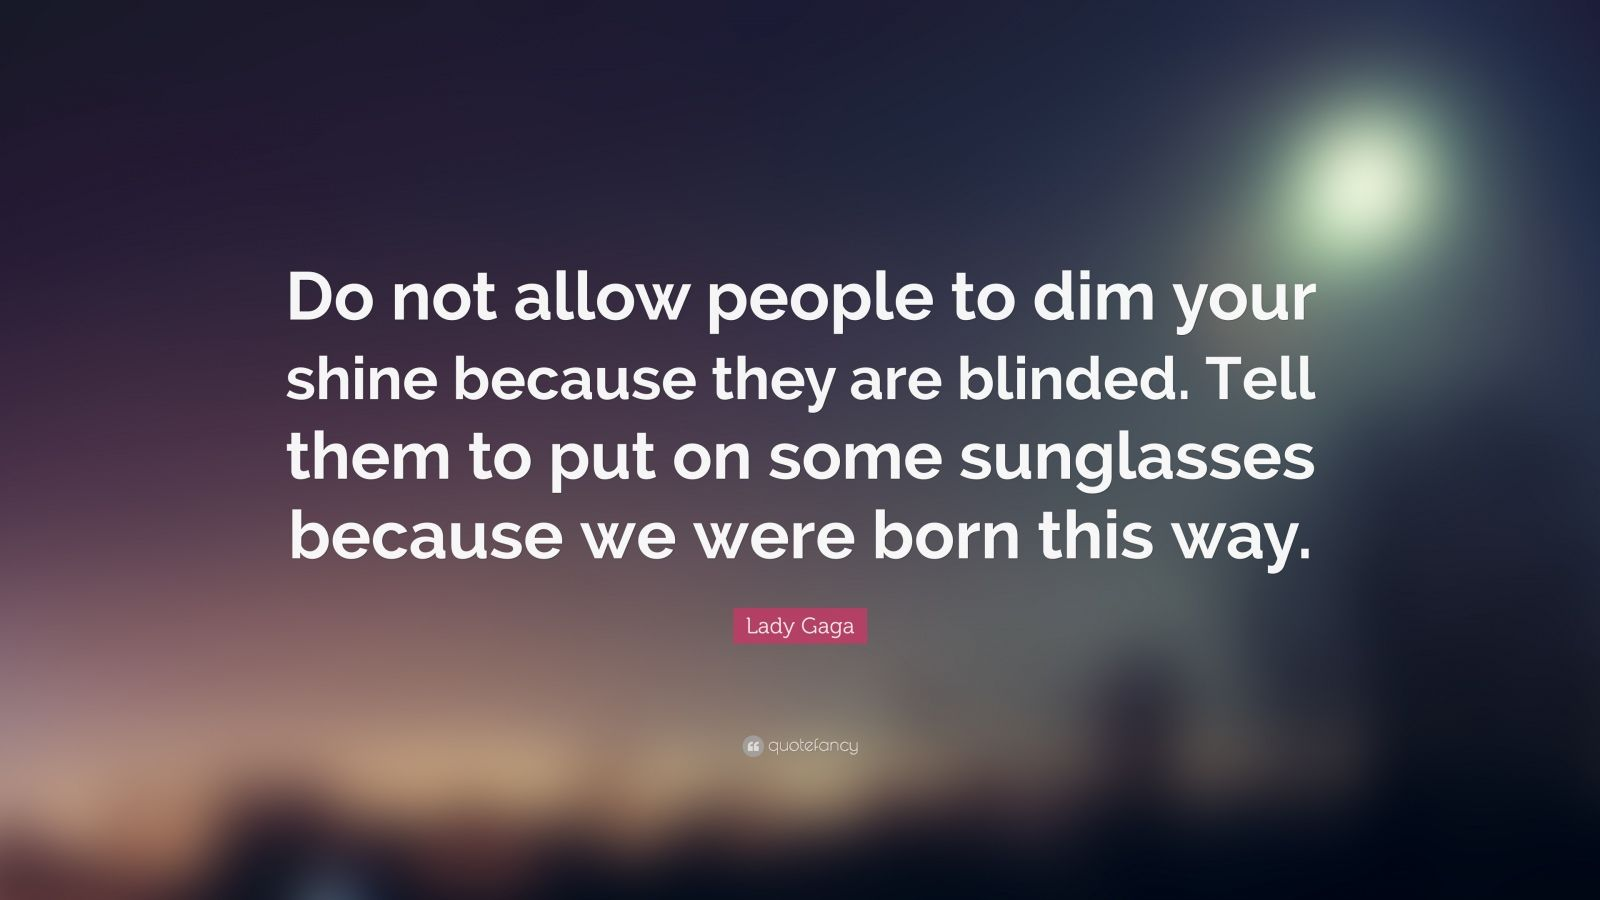 """Lady Gaga Quote: """"Do not allow people to dim your shine because they are blinded. Tell them to put on some sunglasses because we were born this way."""""""